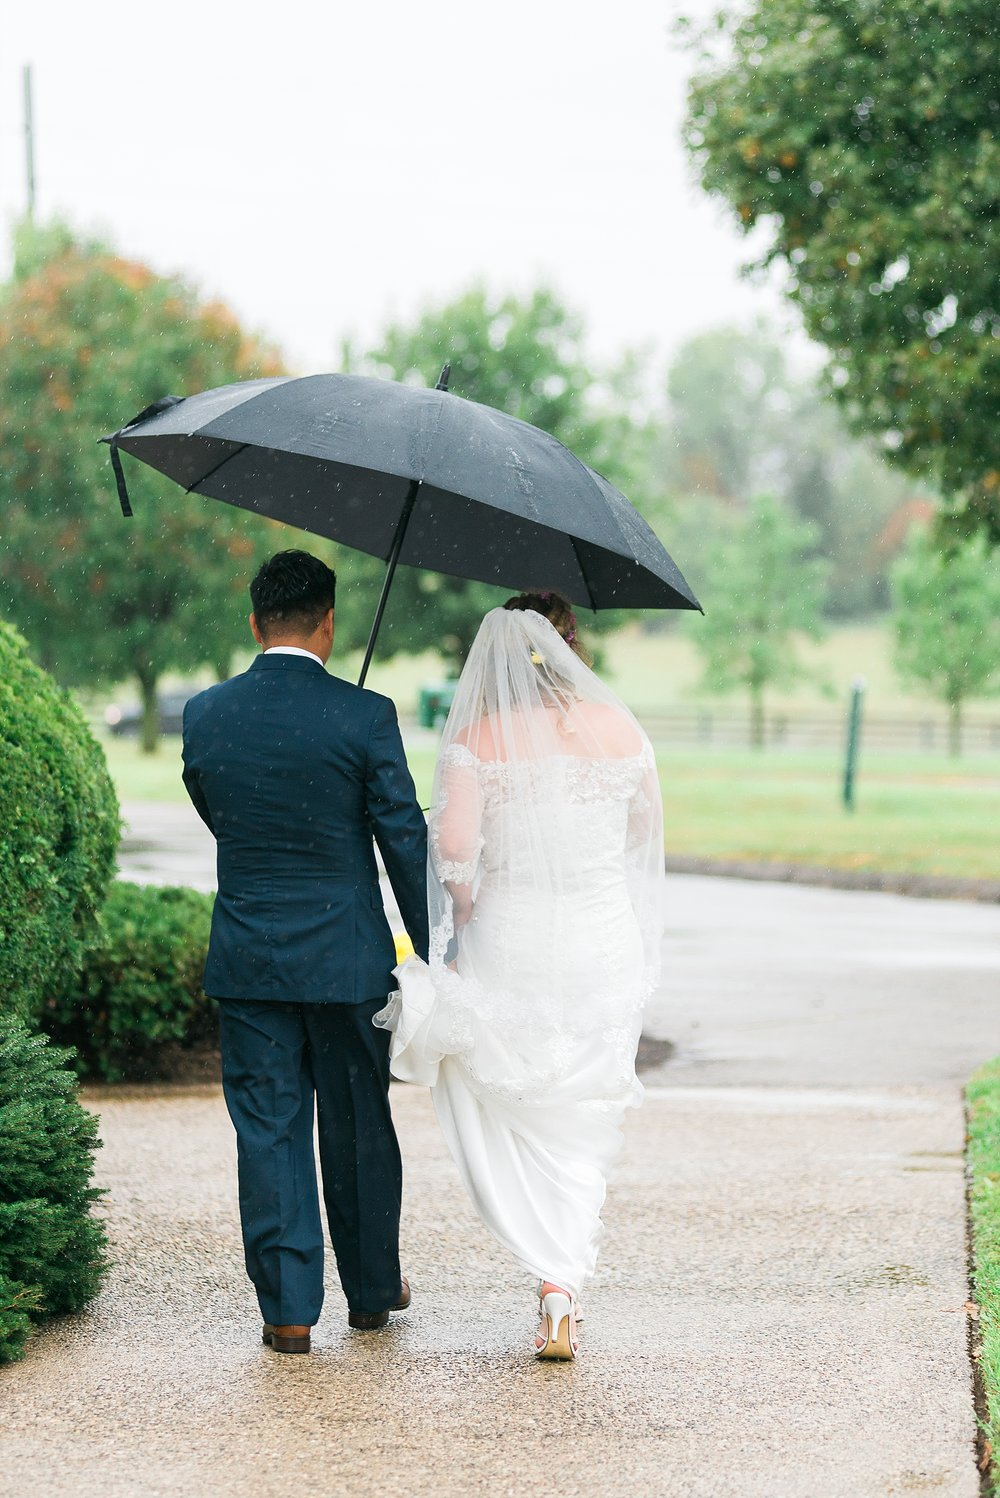 rainy-day-wedding-umbrella